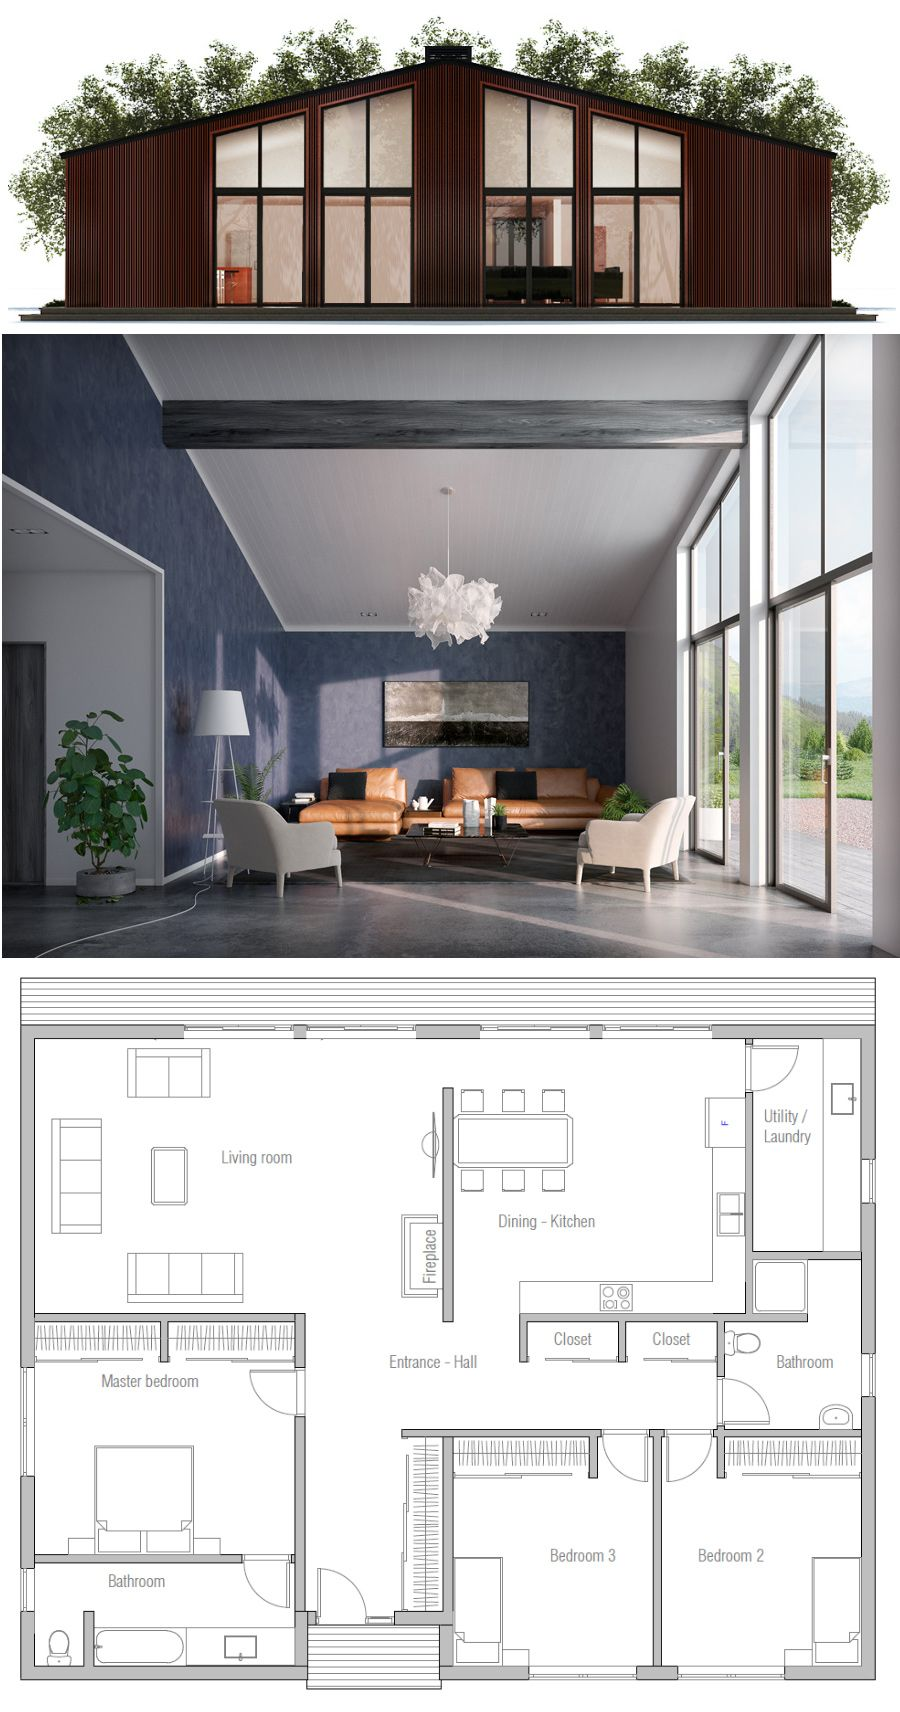 small house plan small house plans pinterest small house small house plan